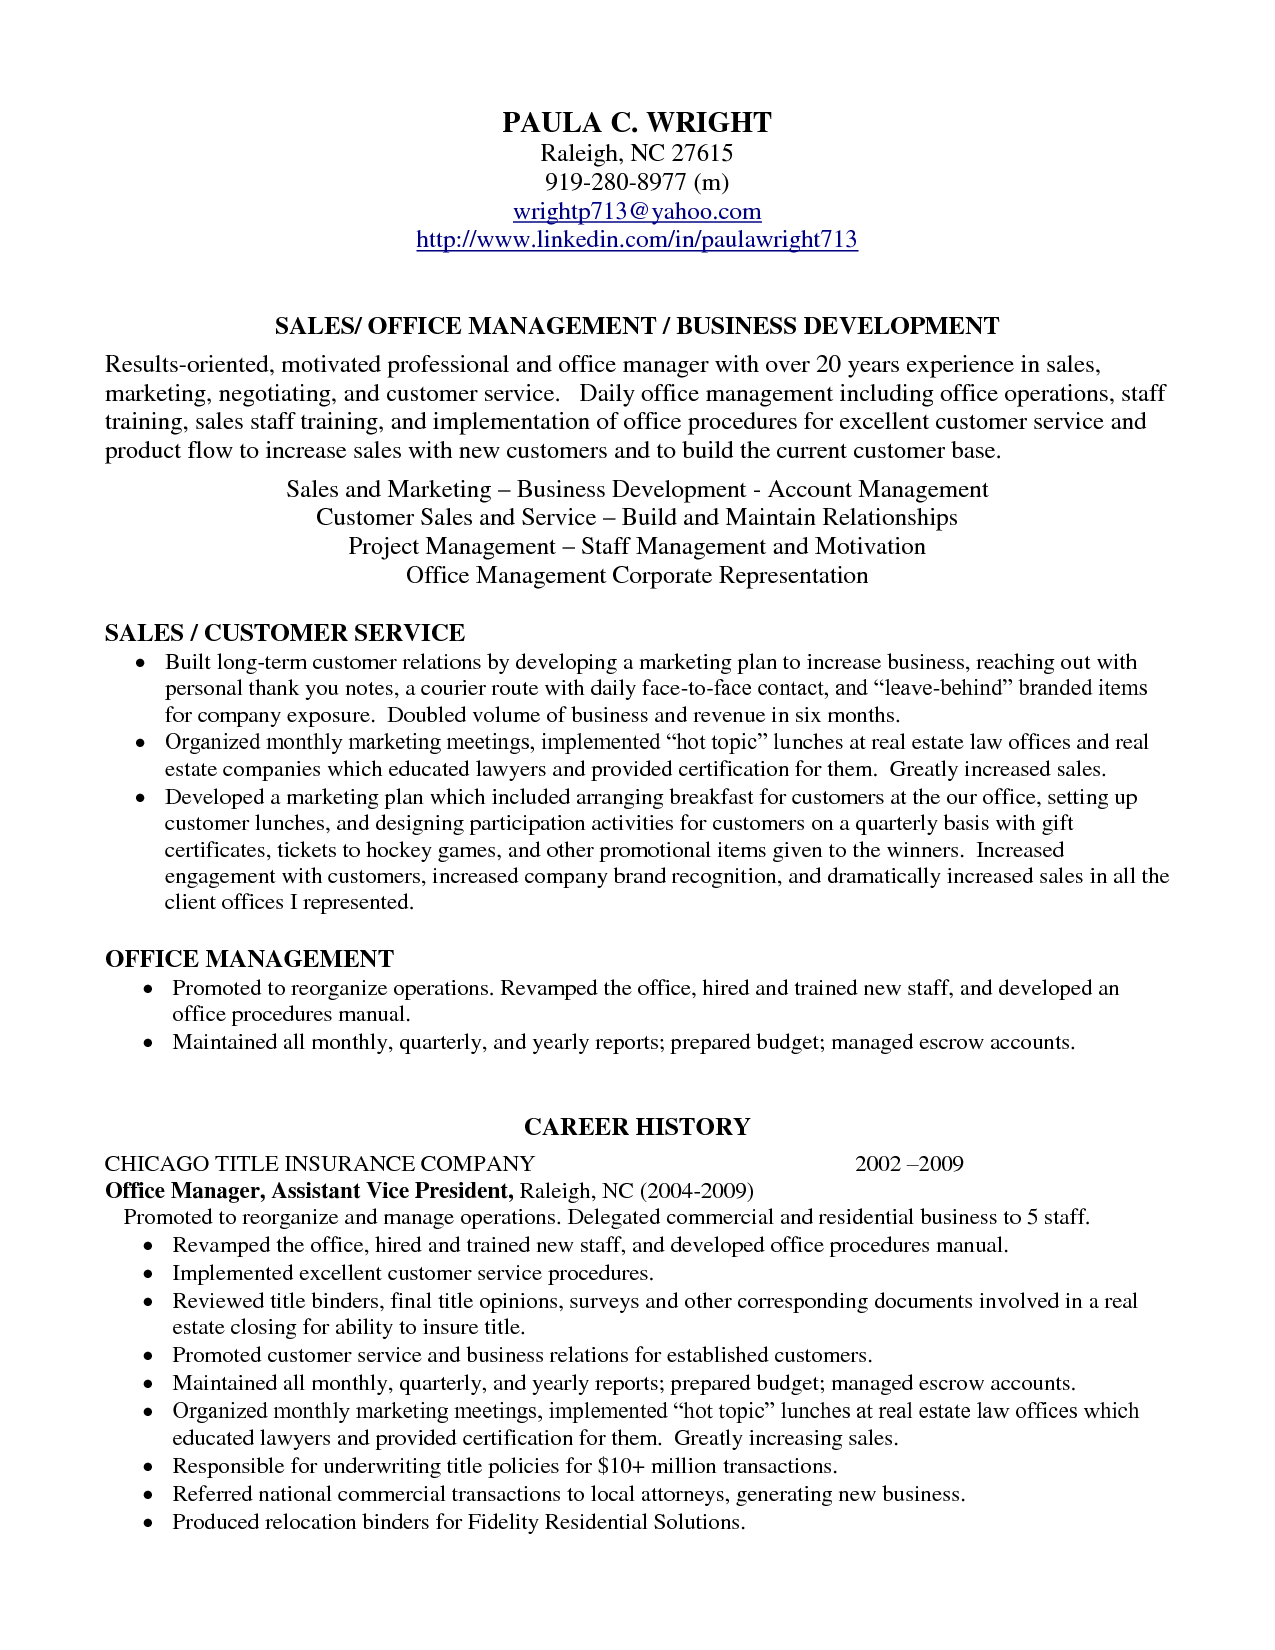 Professional Marketing Resume Sample Manager  Resume Examples It Professional